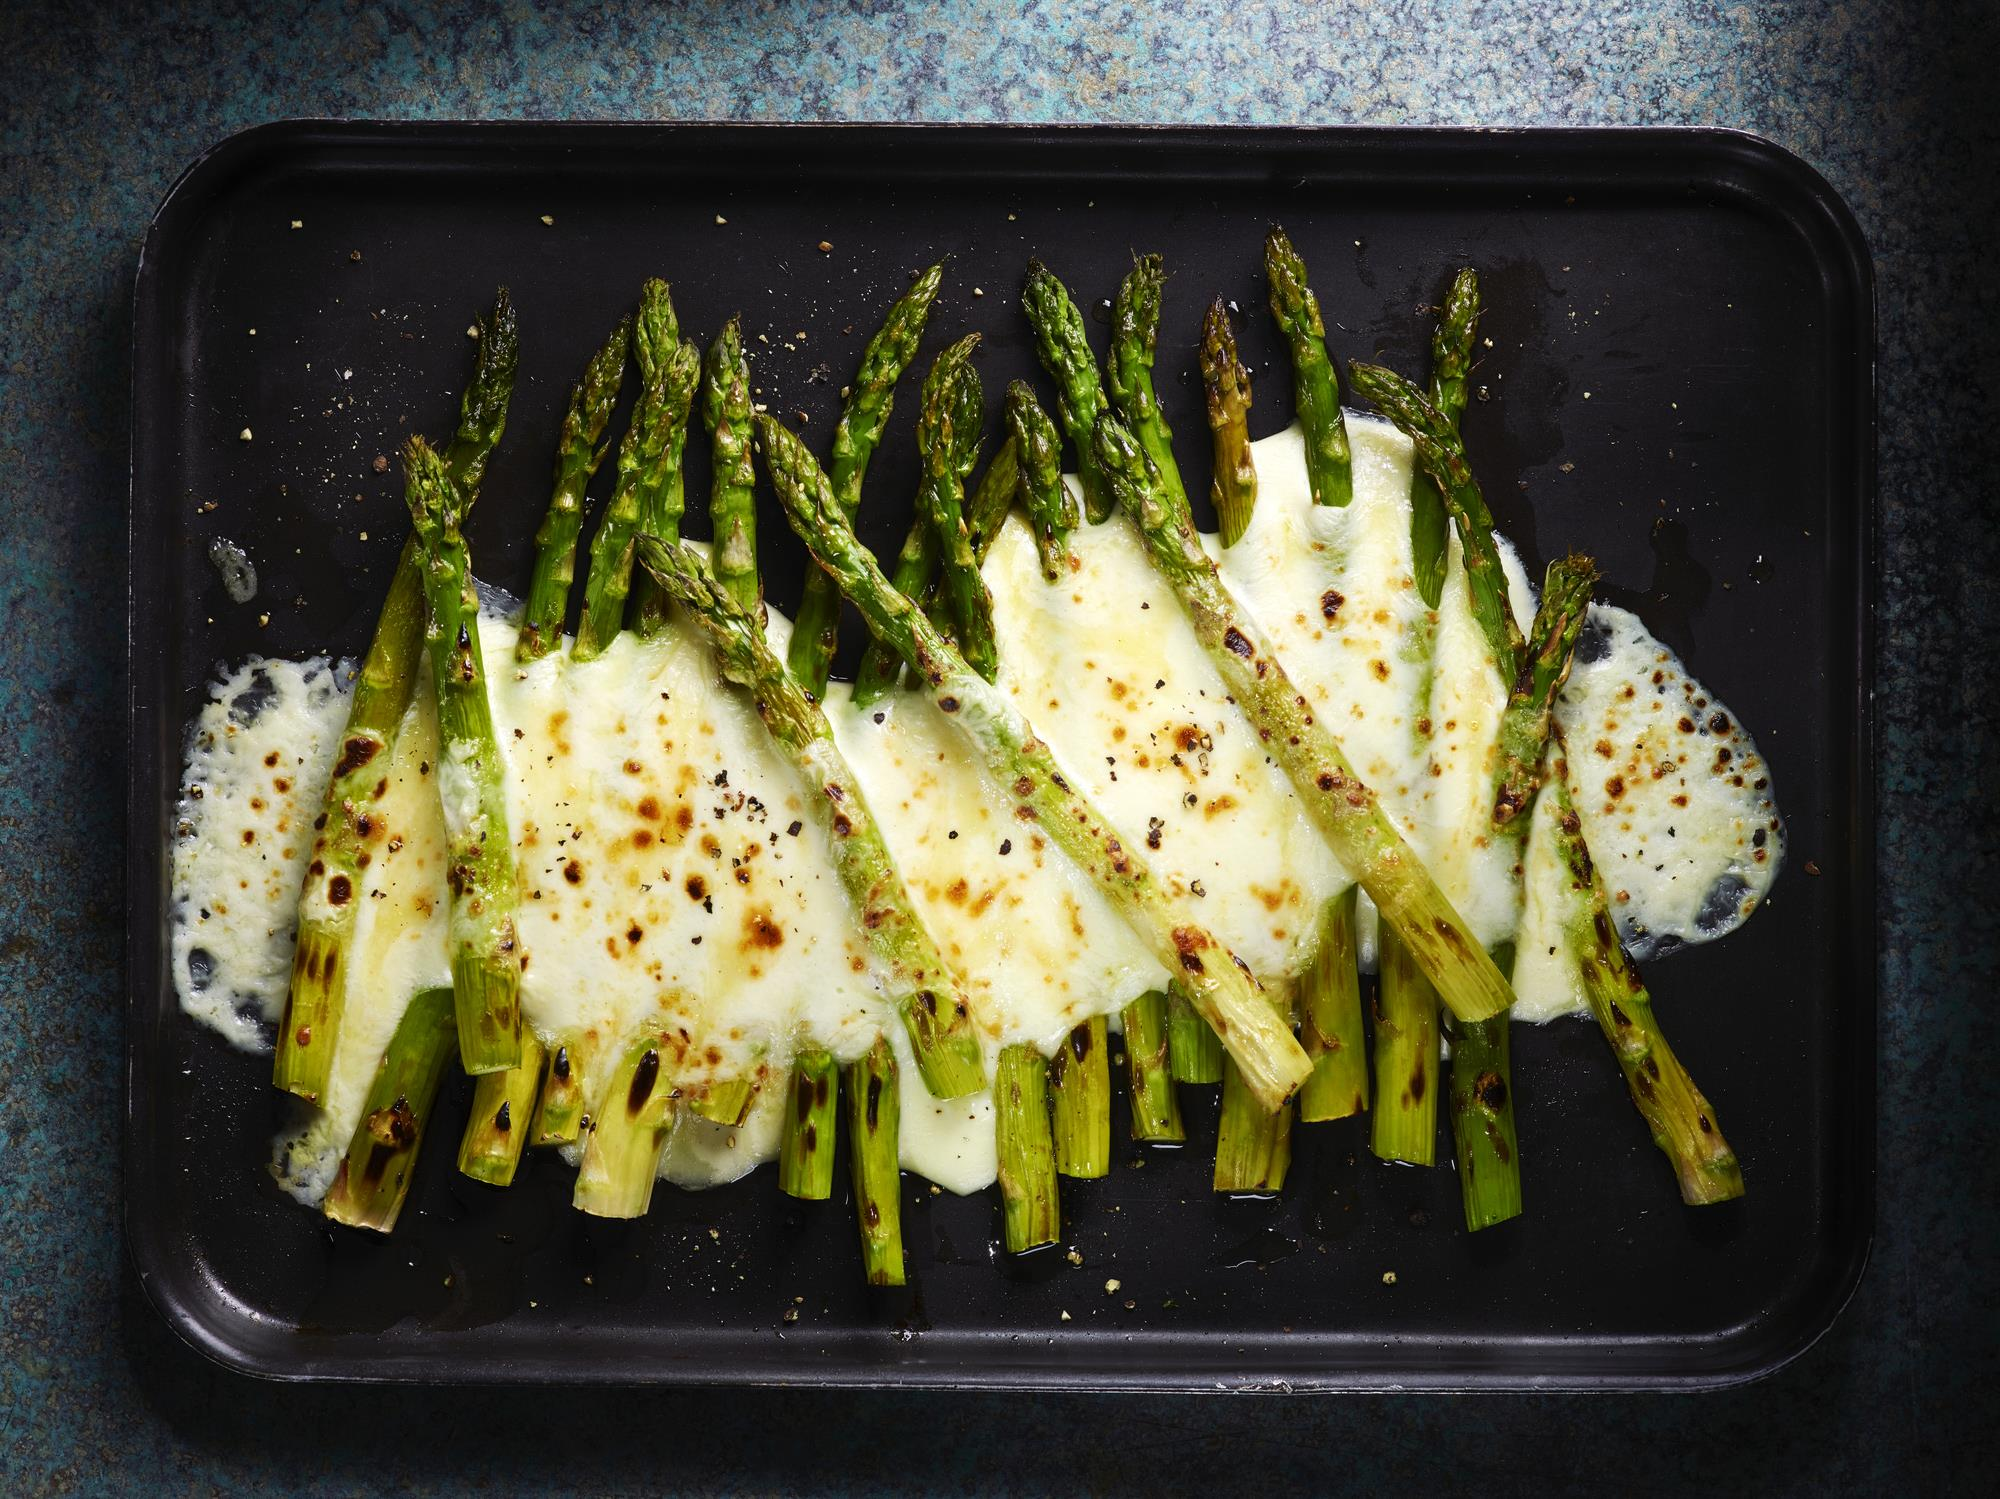 Cheesy asparagus on tray